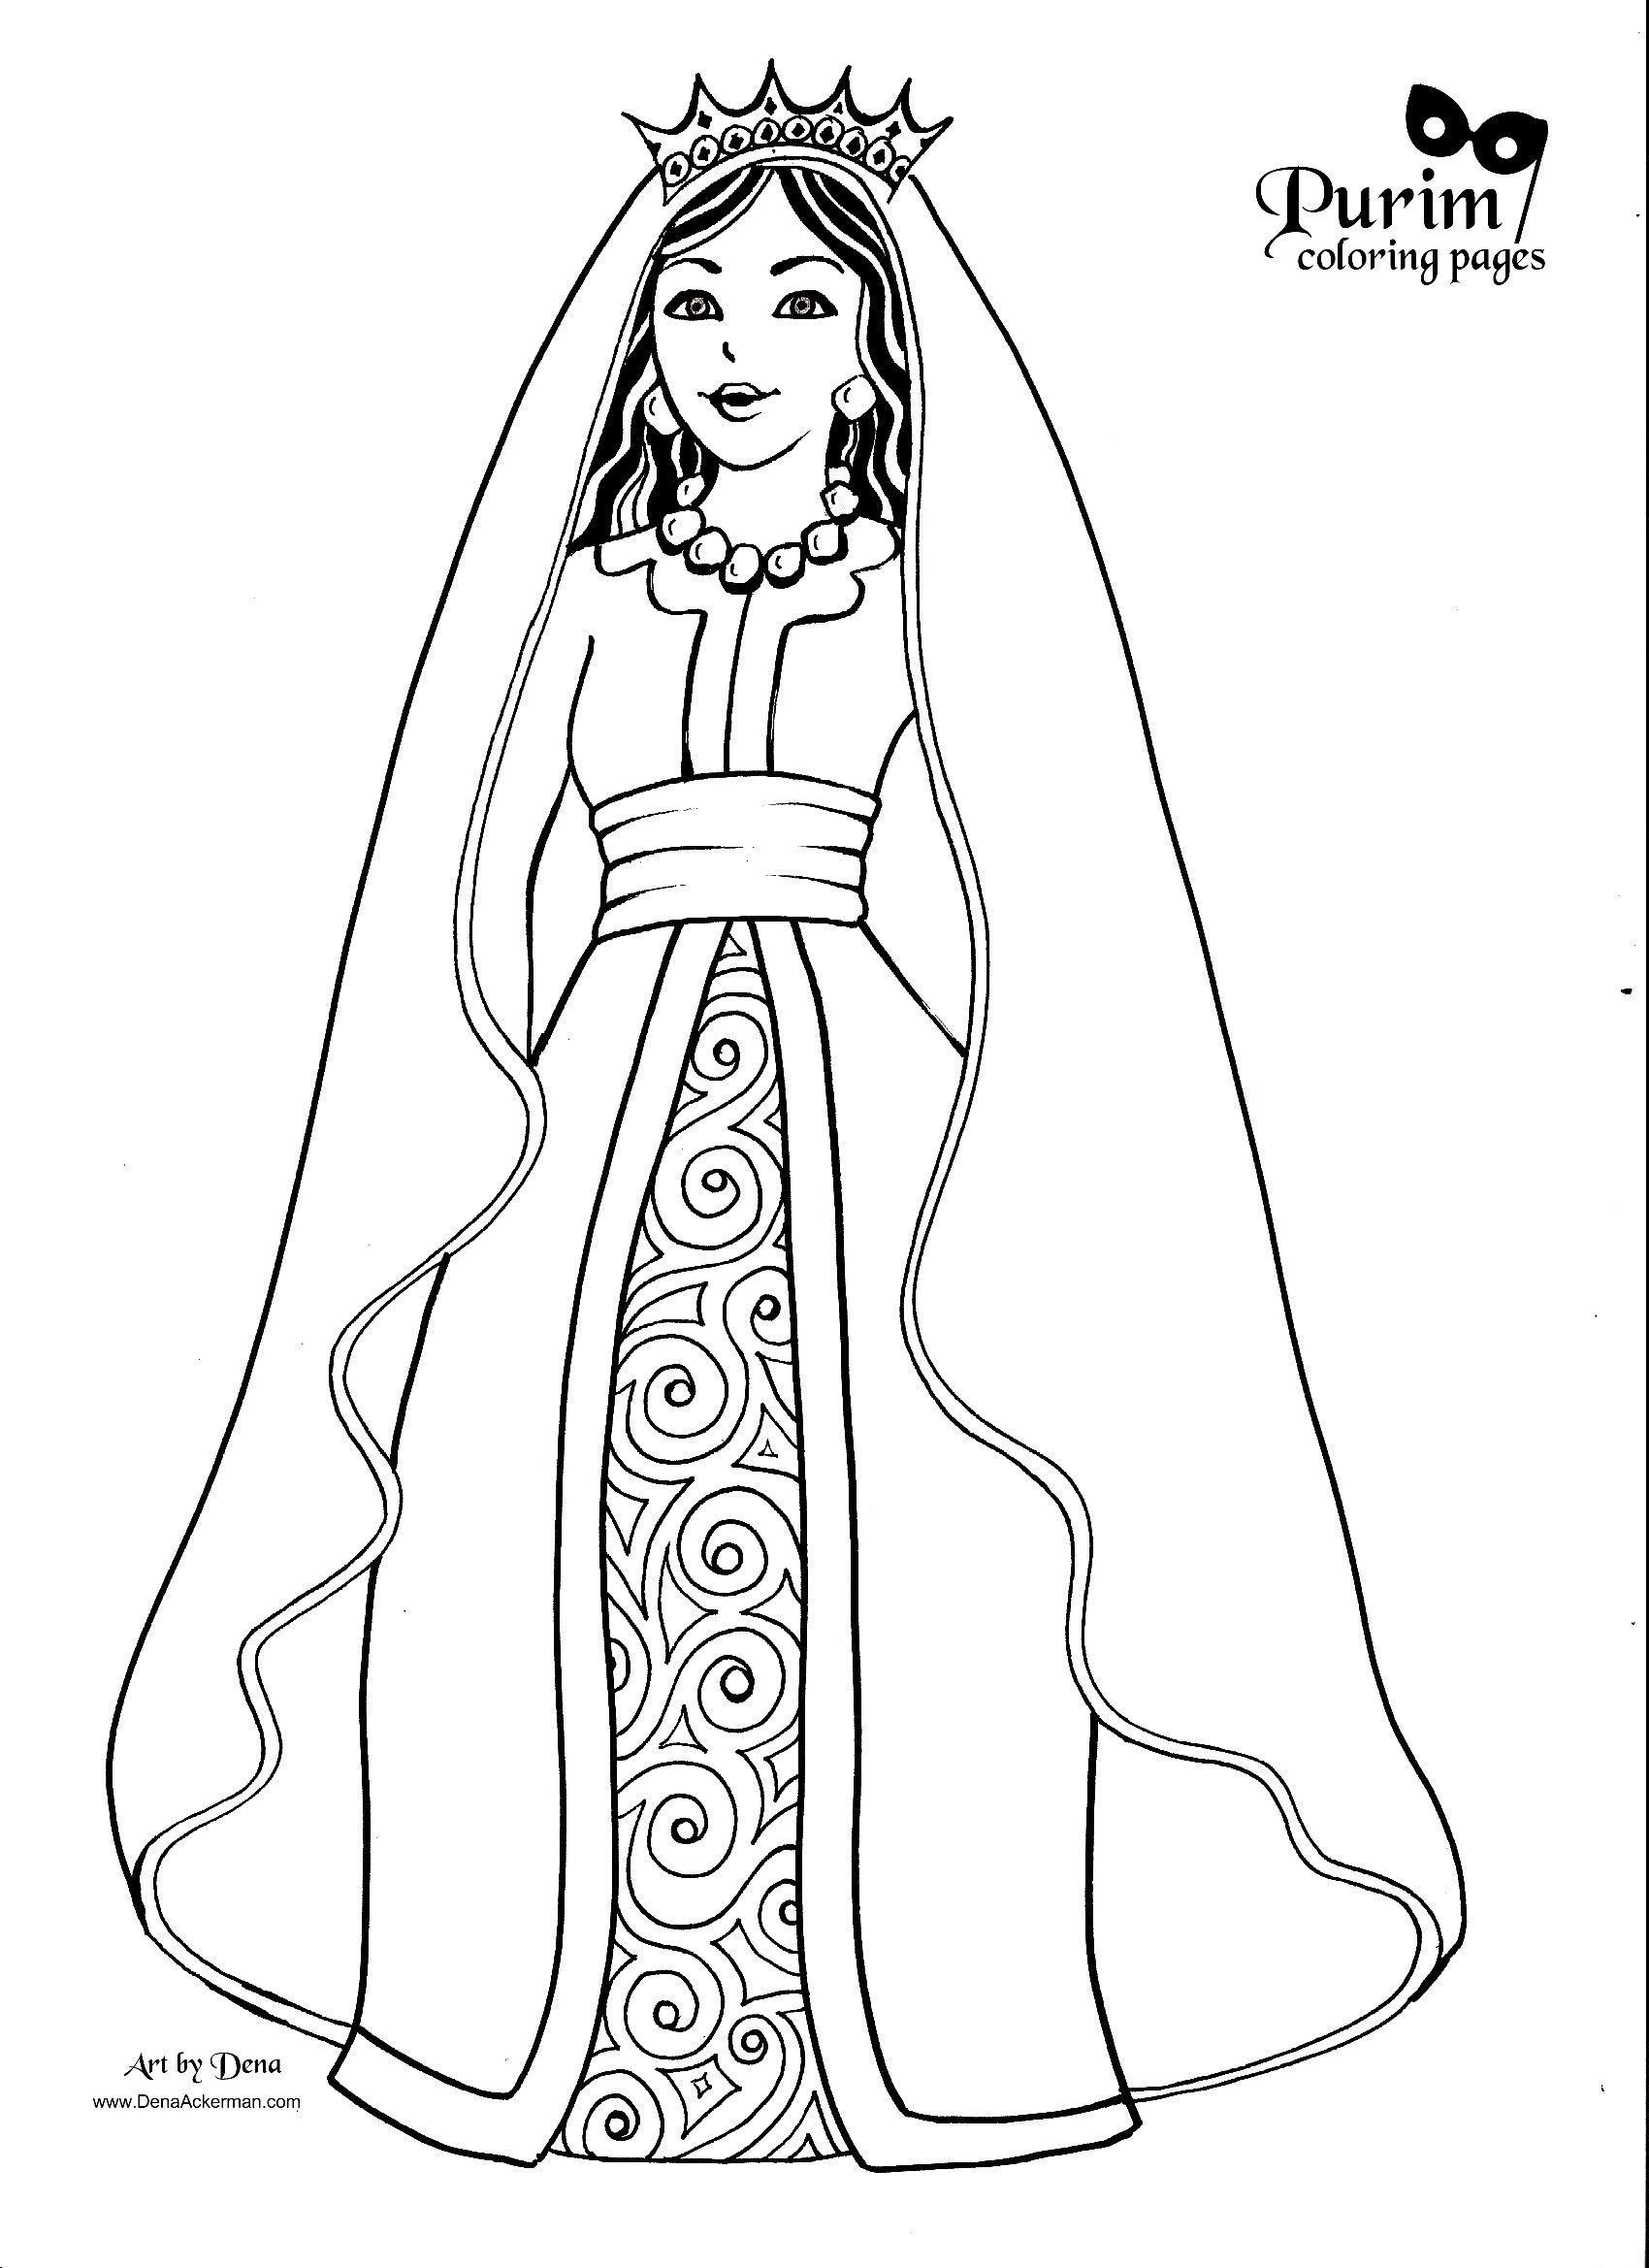 free bible coloring pages queen esther esther coloring pages pages bible esther free coloring queen